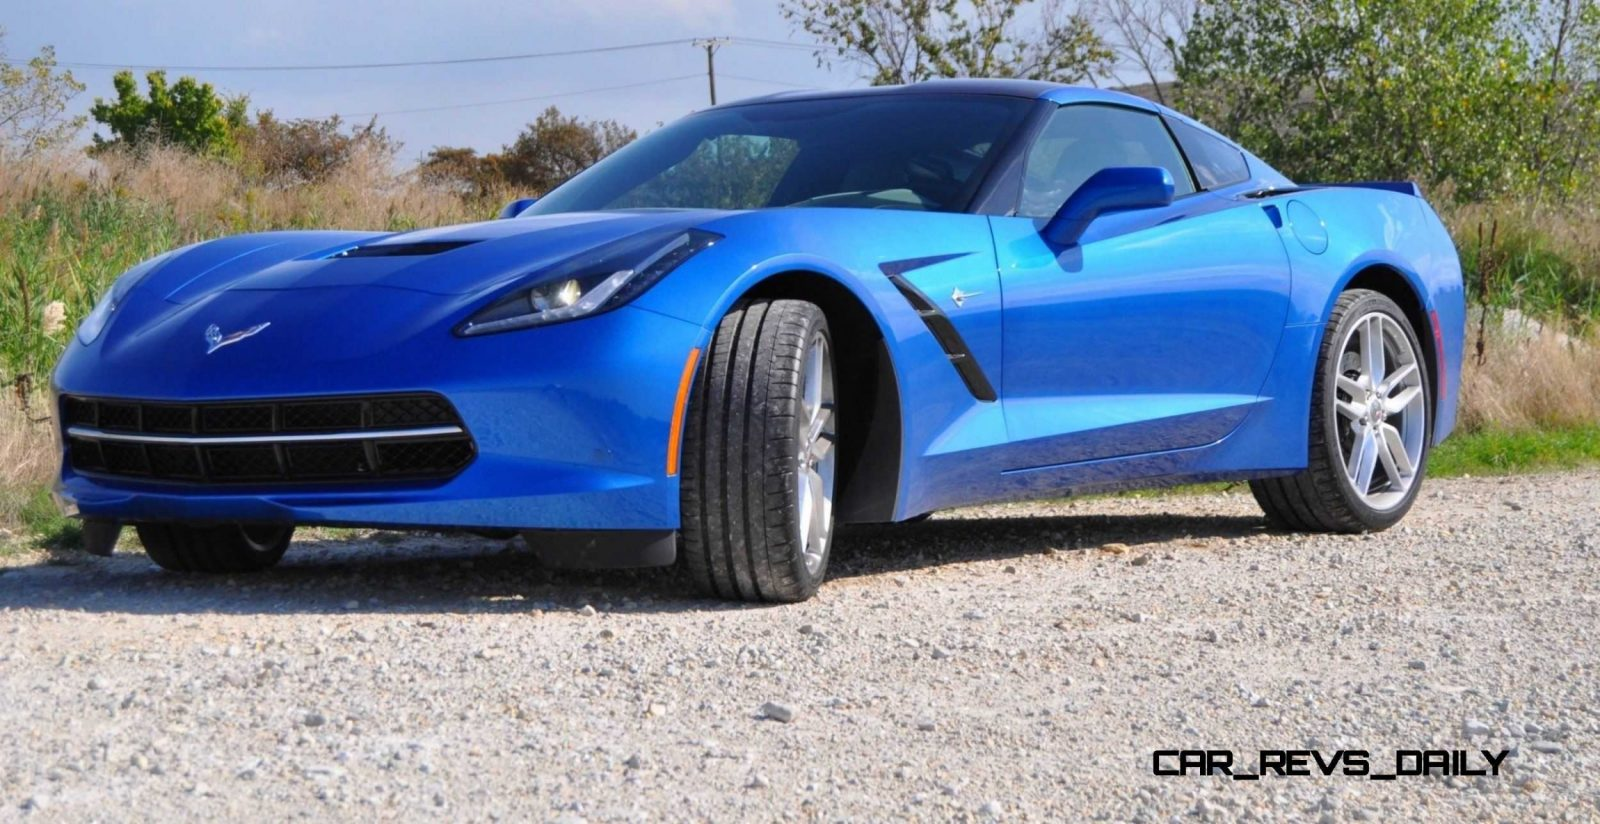 2014 Chevrolet Corvette Stingray Z51 in 102 Photos27